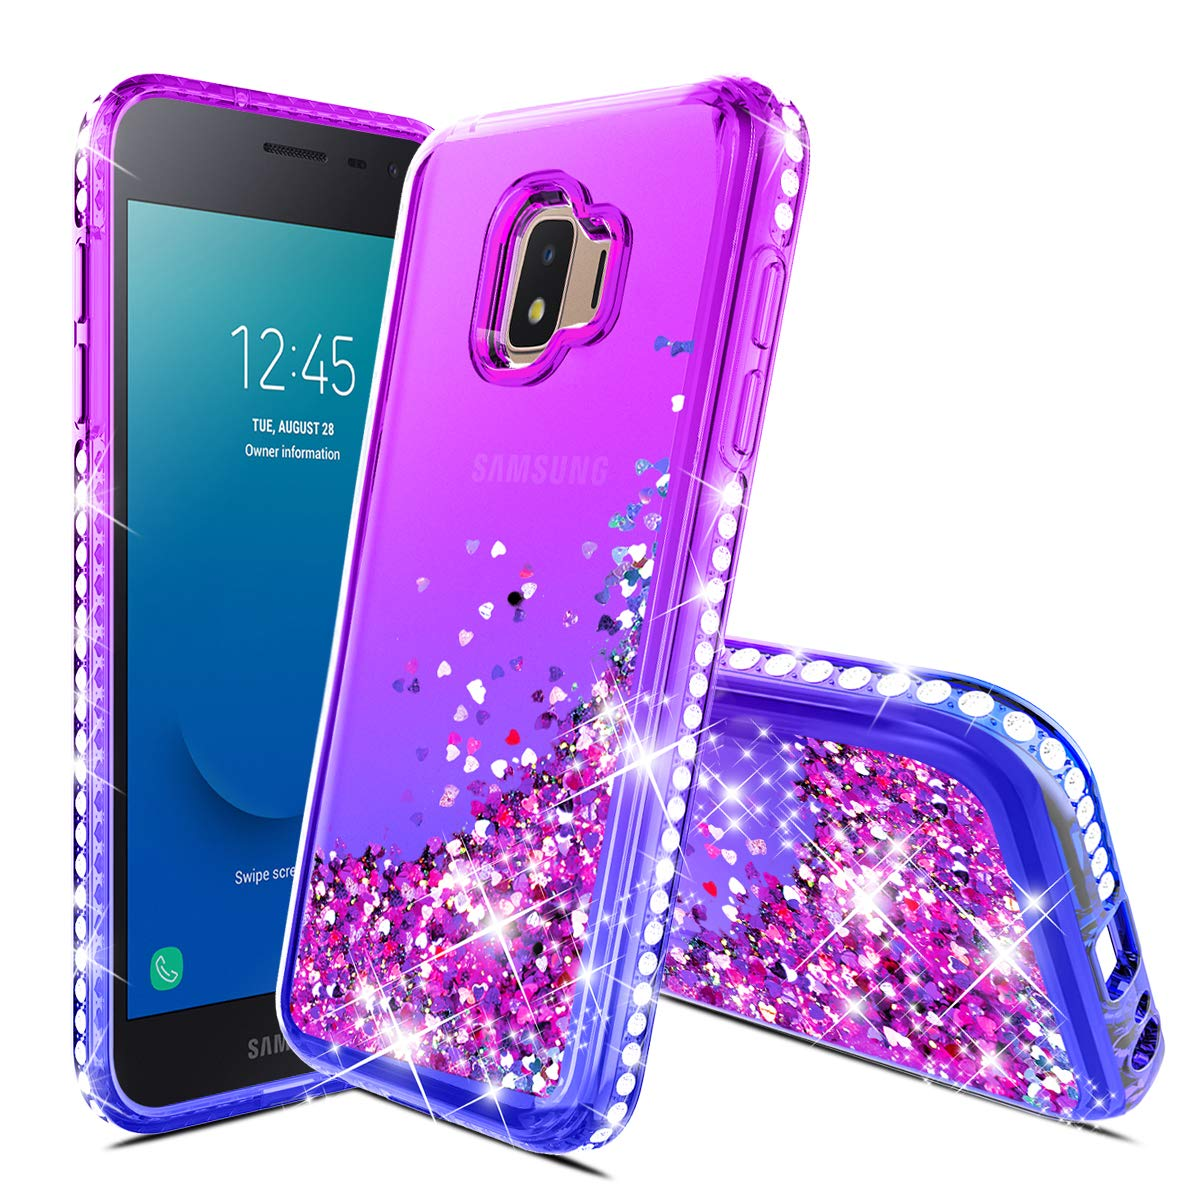 new concept 4a971 ca61e Top 5 best Samsung Galaxy J2 case in 2019 review - A Best Pro